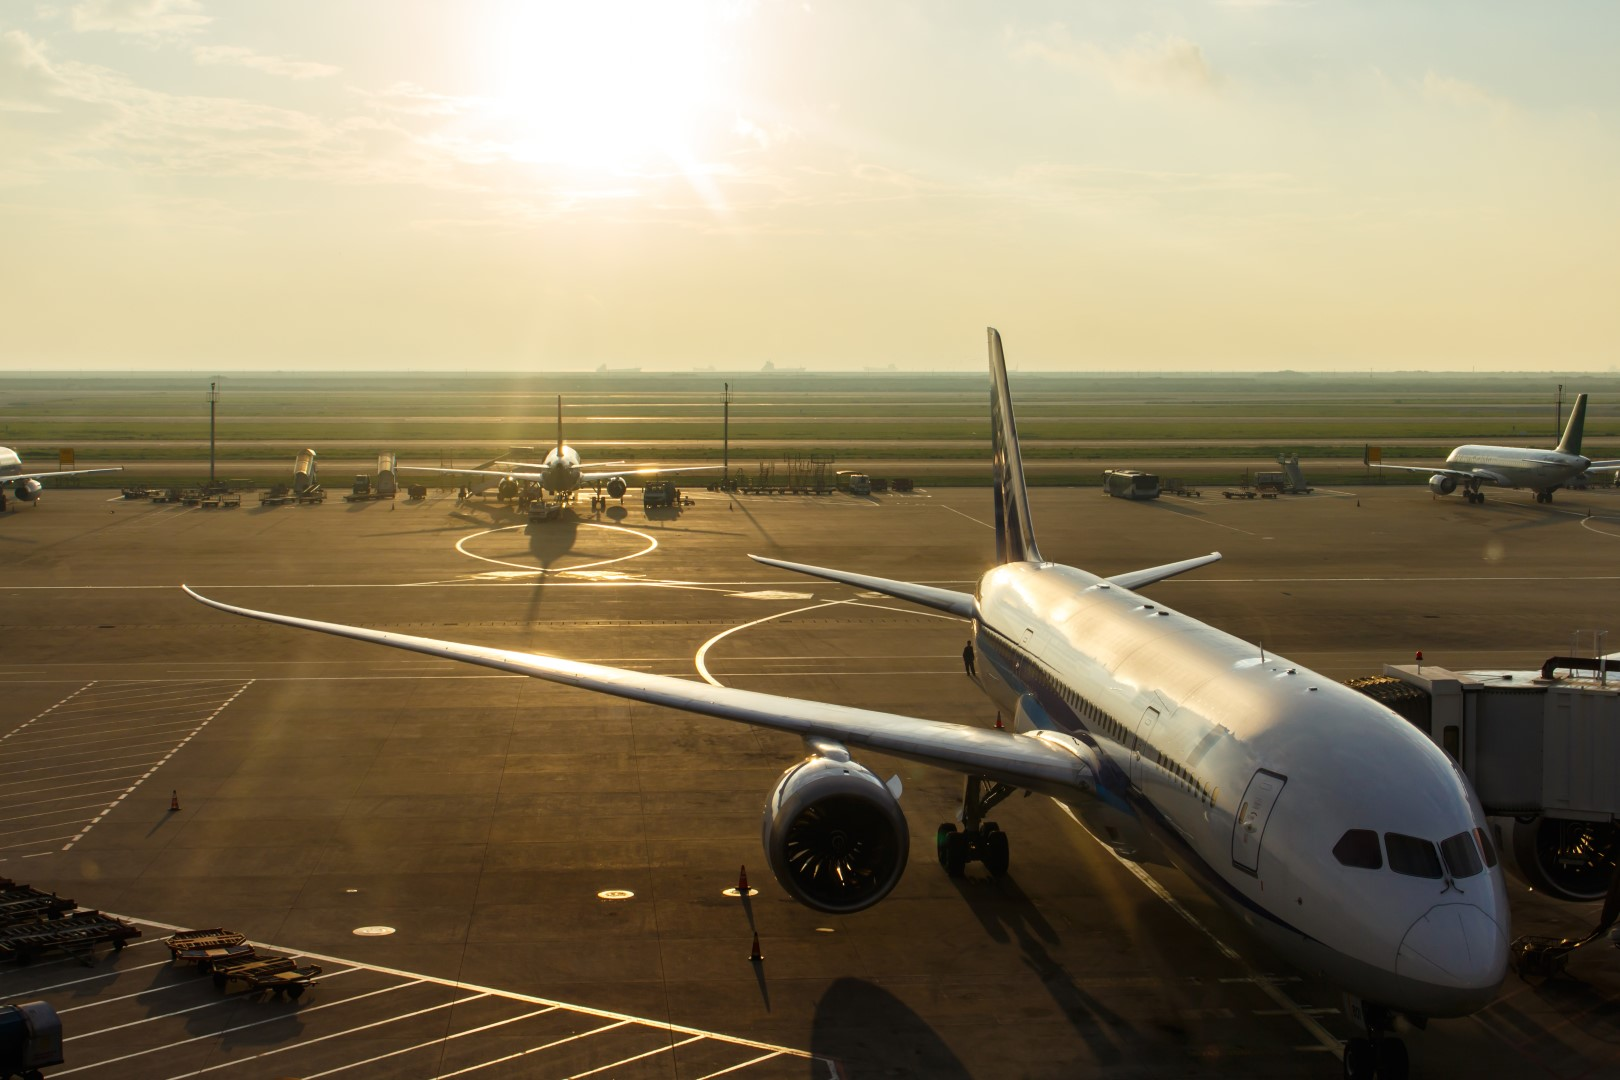 FIUMICINO, AIR PUSHED BY HAND ON THE TRACK: TAKE OFF 90 MINUTES LATE